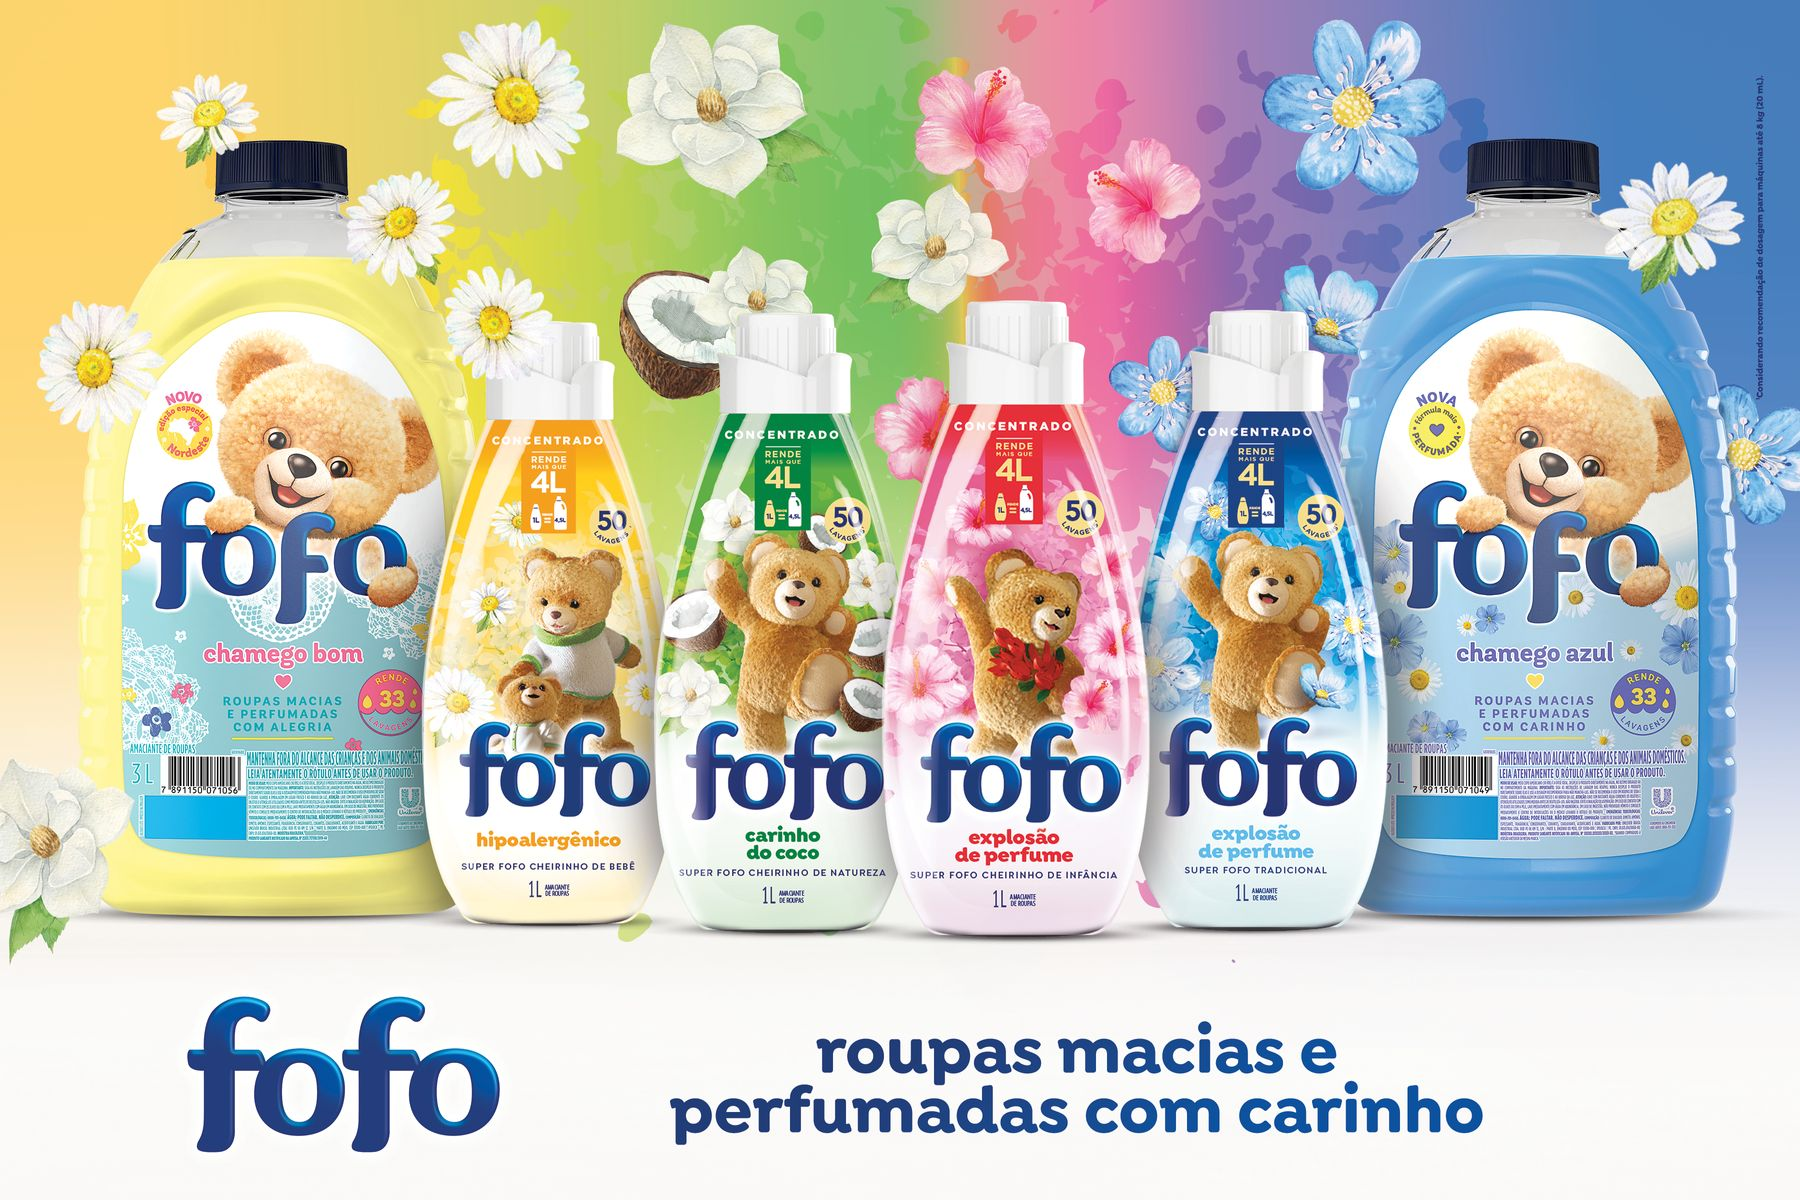 Fofo banner